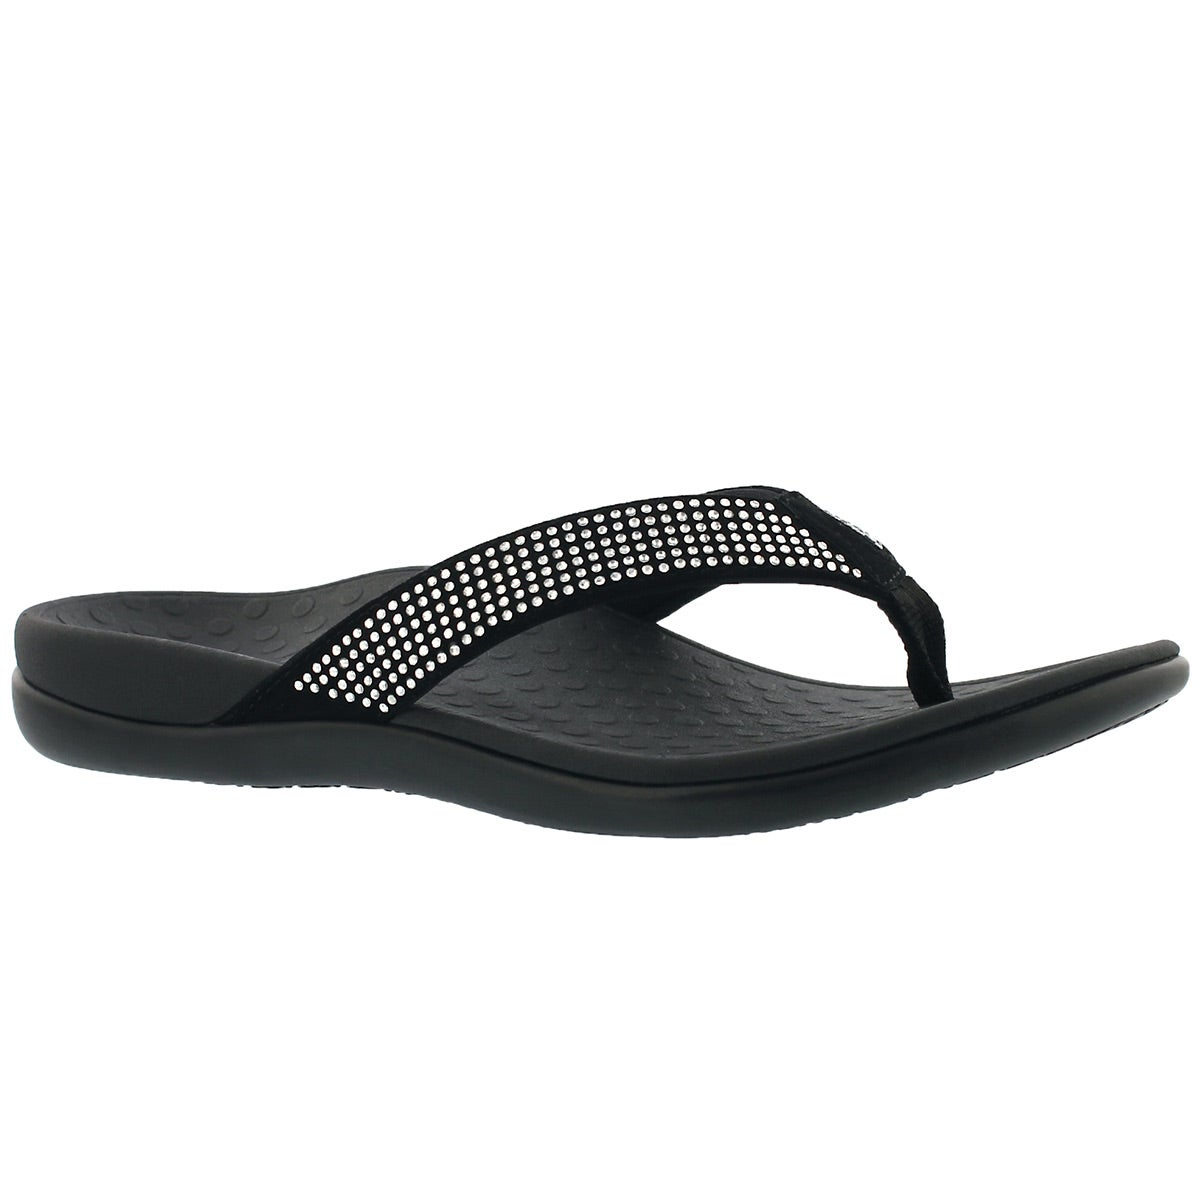 Women's TIDERHINESTONE black arch support thongs